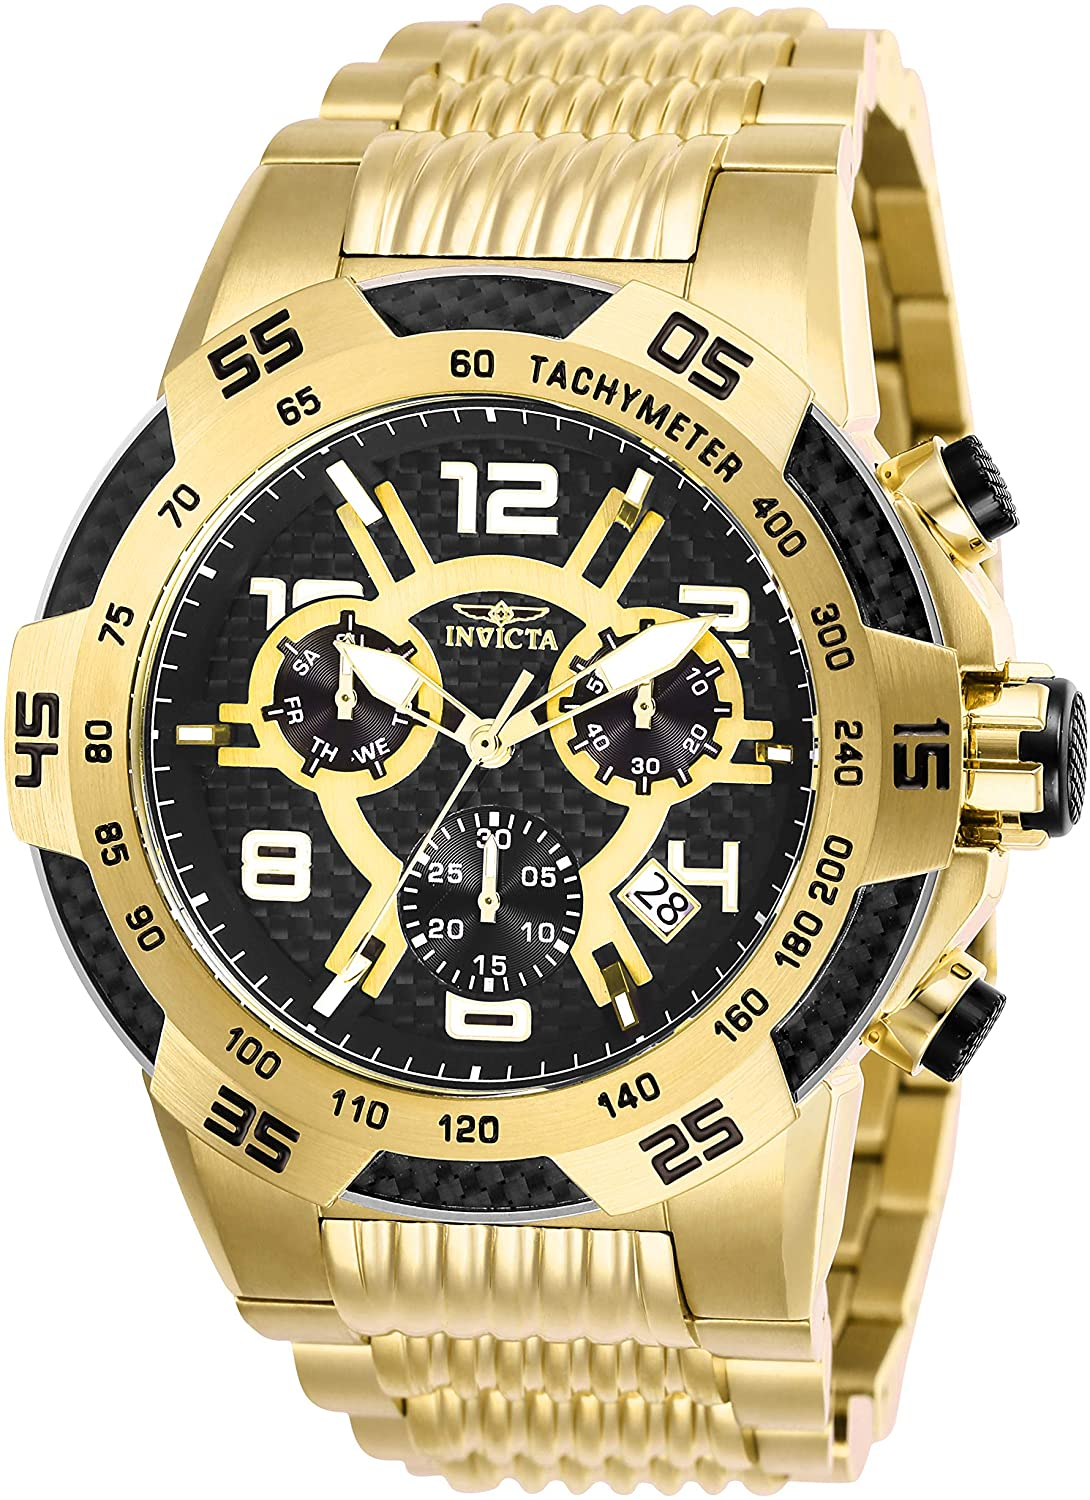 Invicta Men's Speedway Quartz Watch with Stainless Steel Strap, Gold, 30 (Model: 25286)